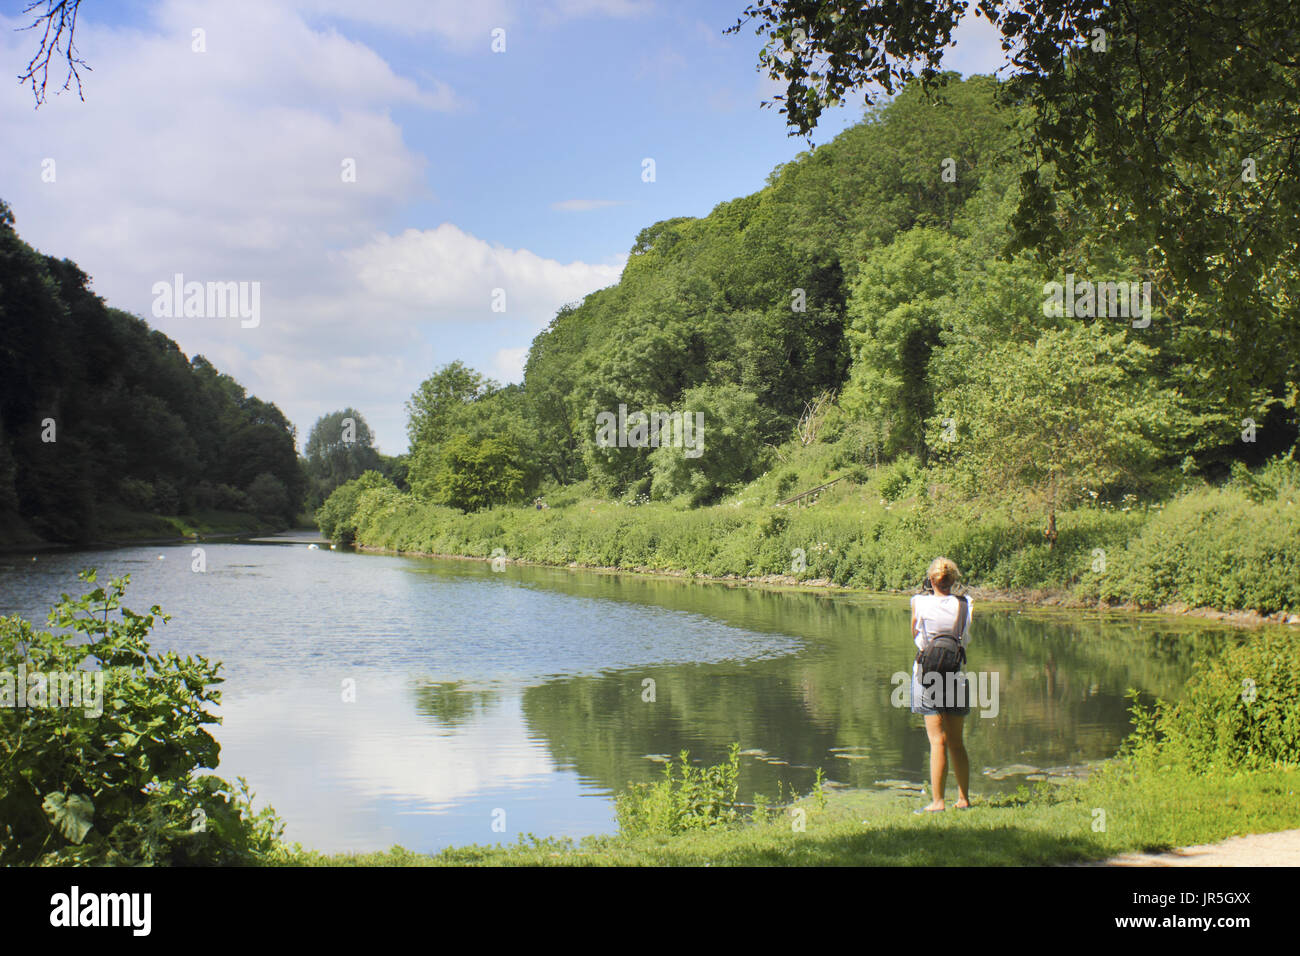 Creswell Crags, a limestone gorge honeycombed with caves of archaeological importance on the border of Derbyshire - Stock Image